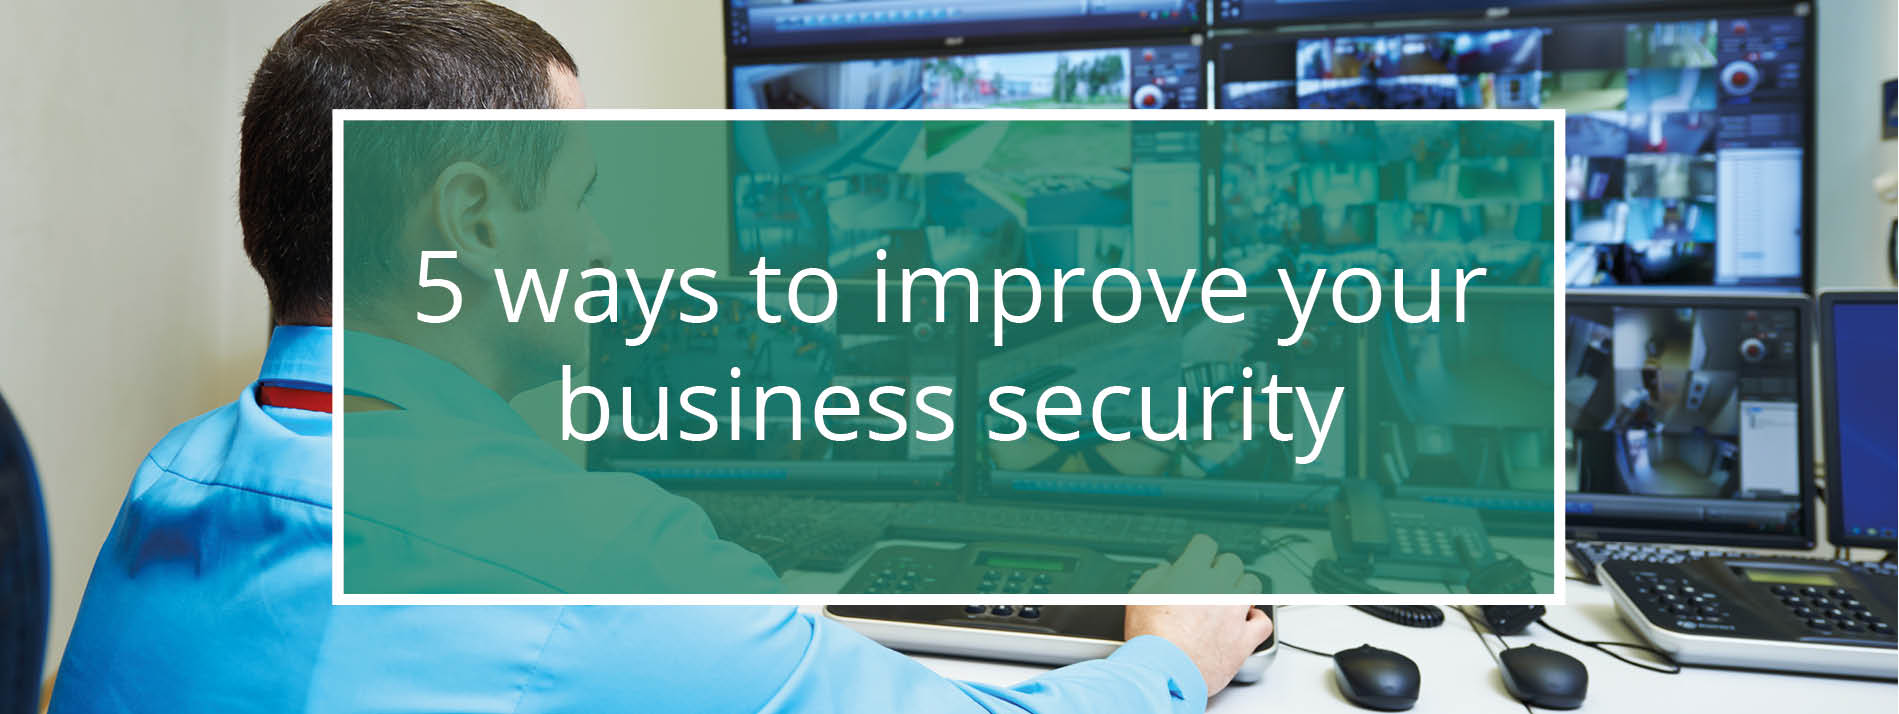 5 ways to improve your business security